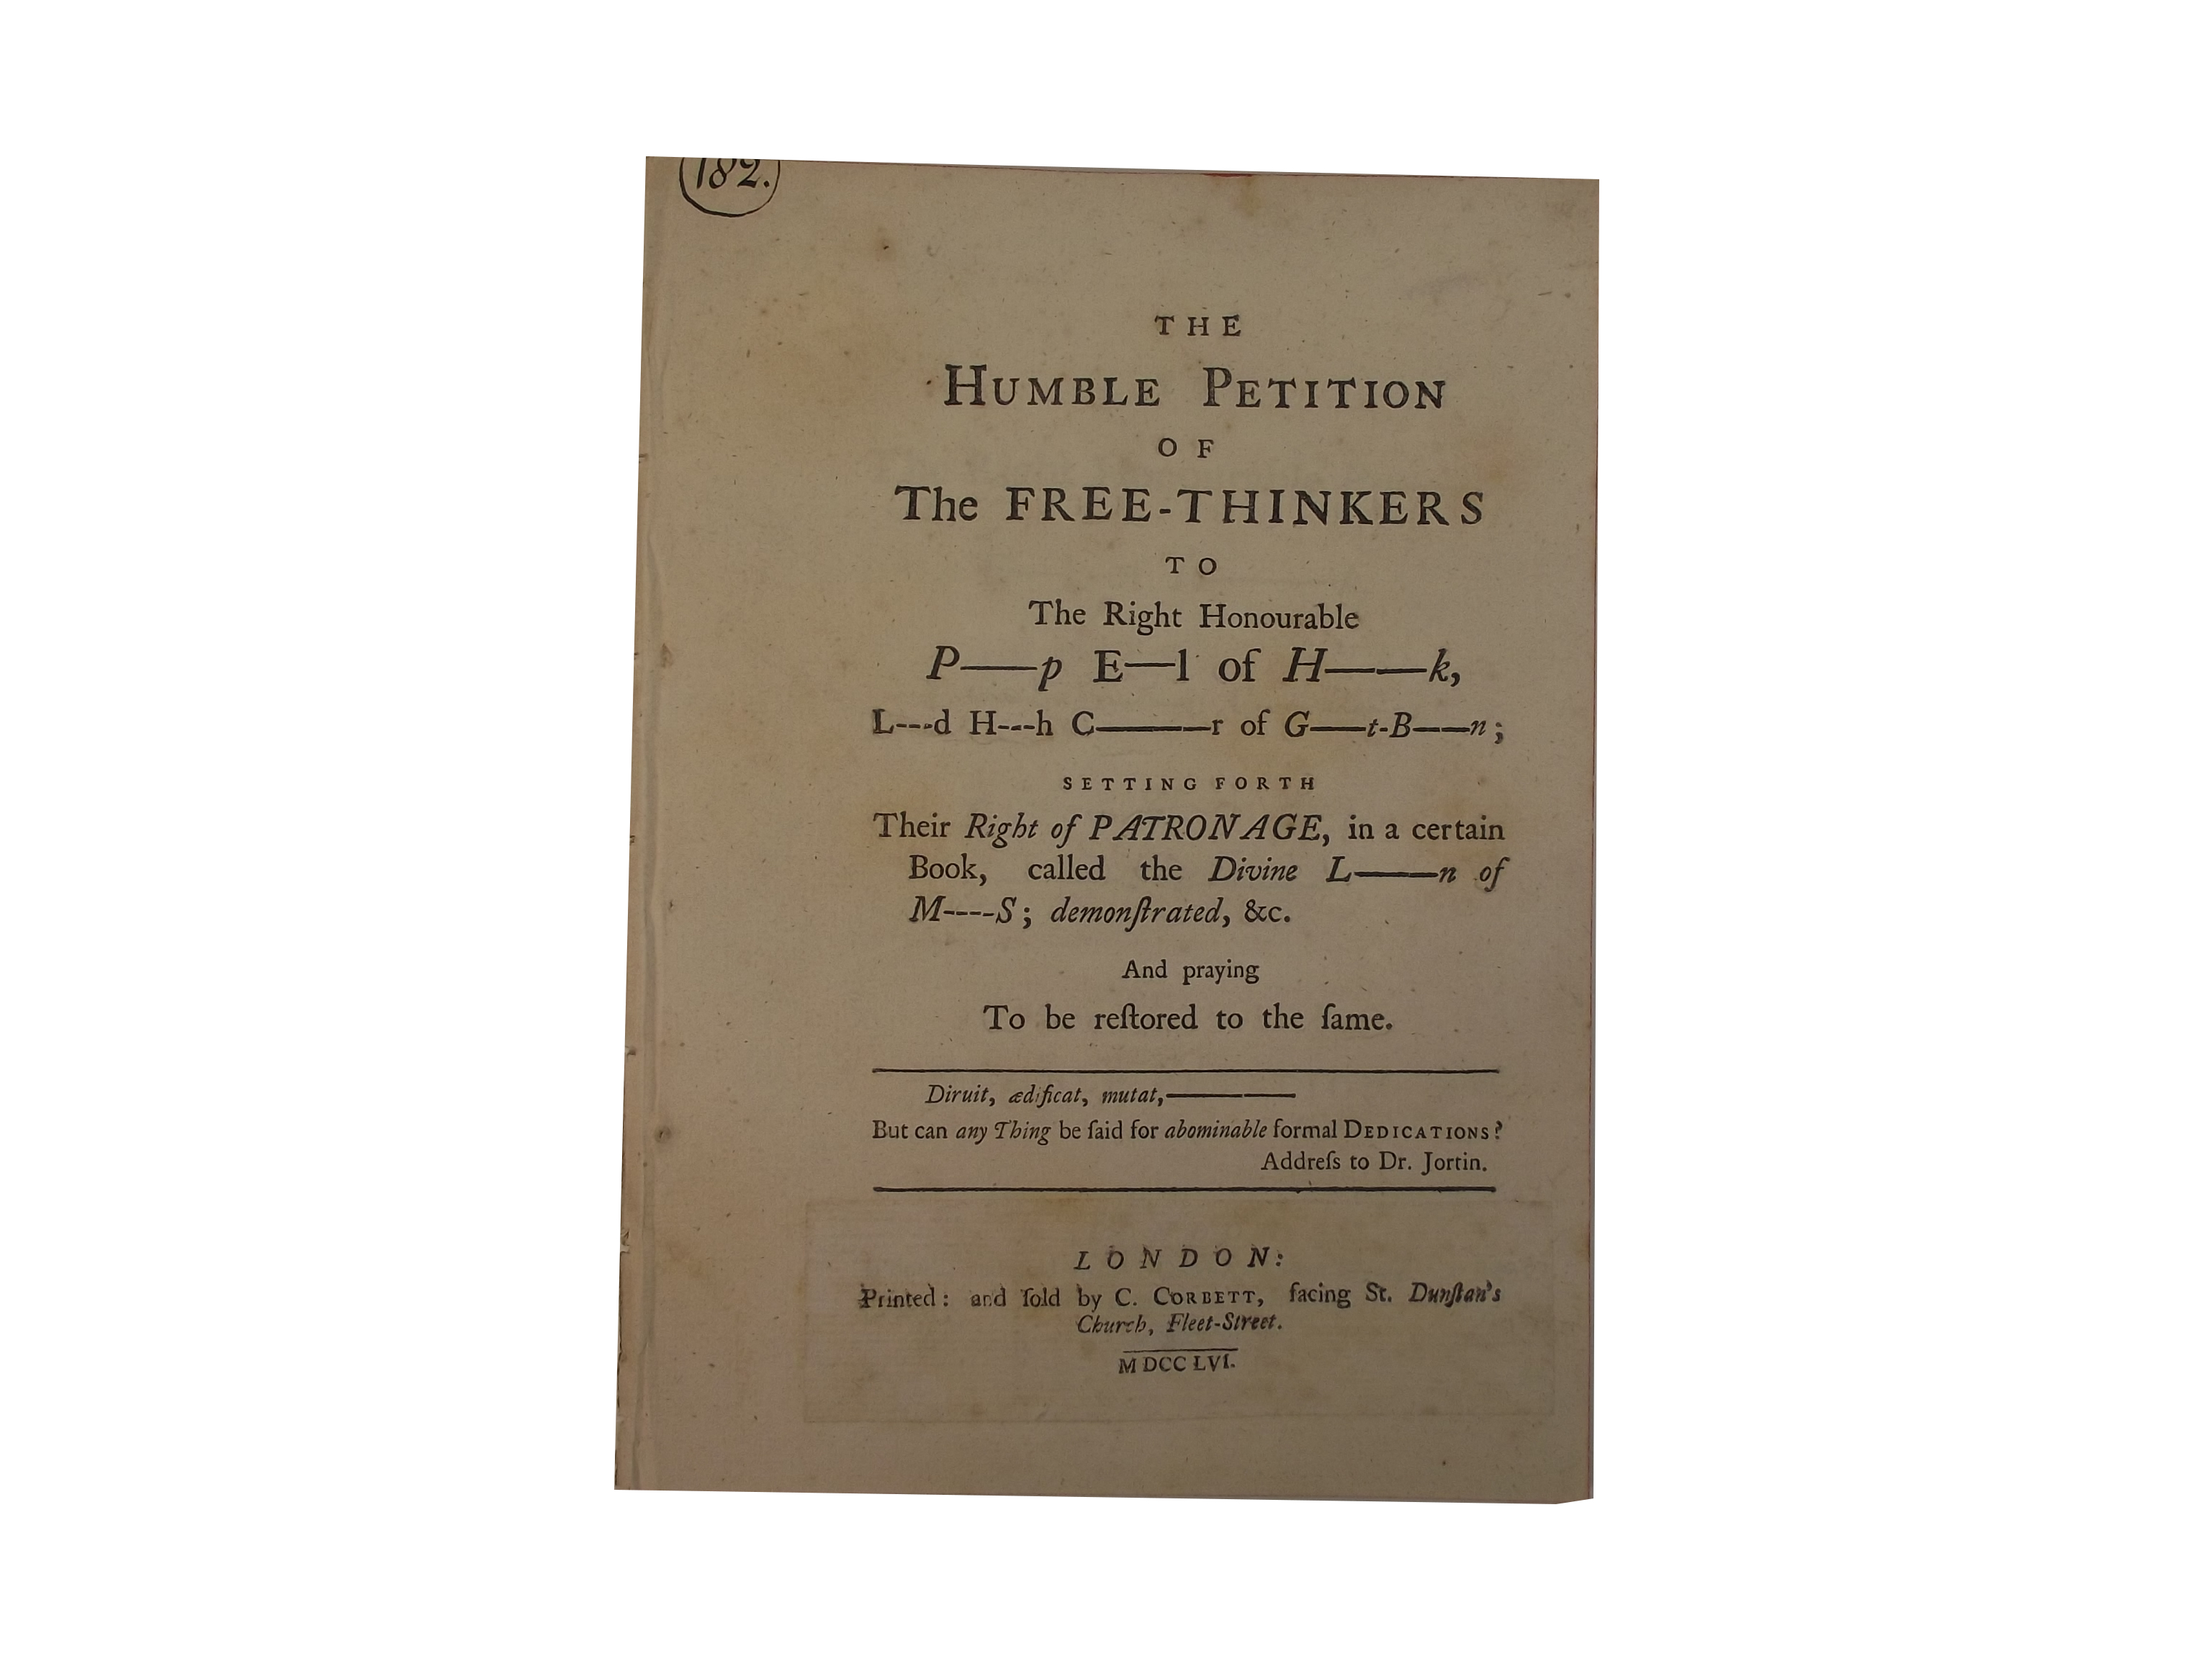 Humble Petition of the Free-Thinkers